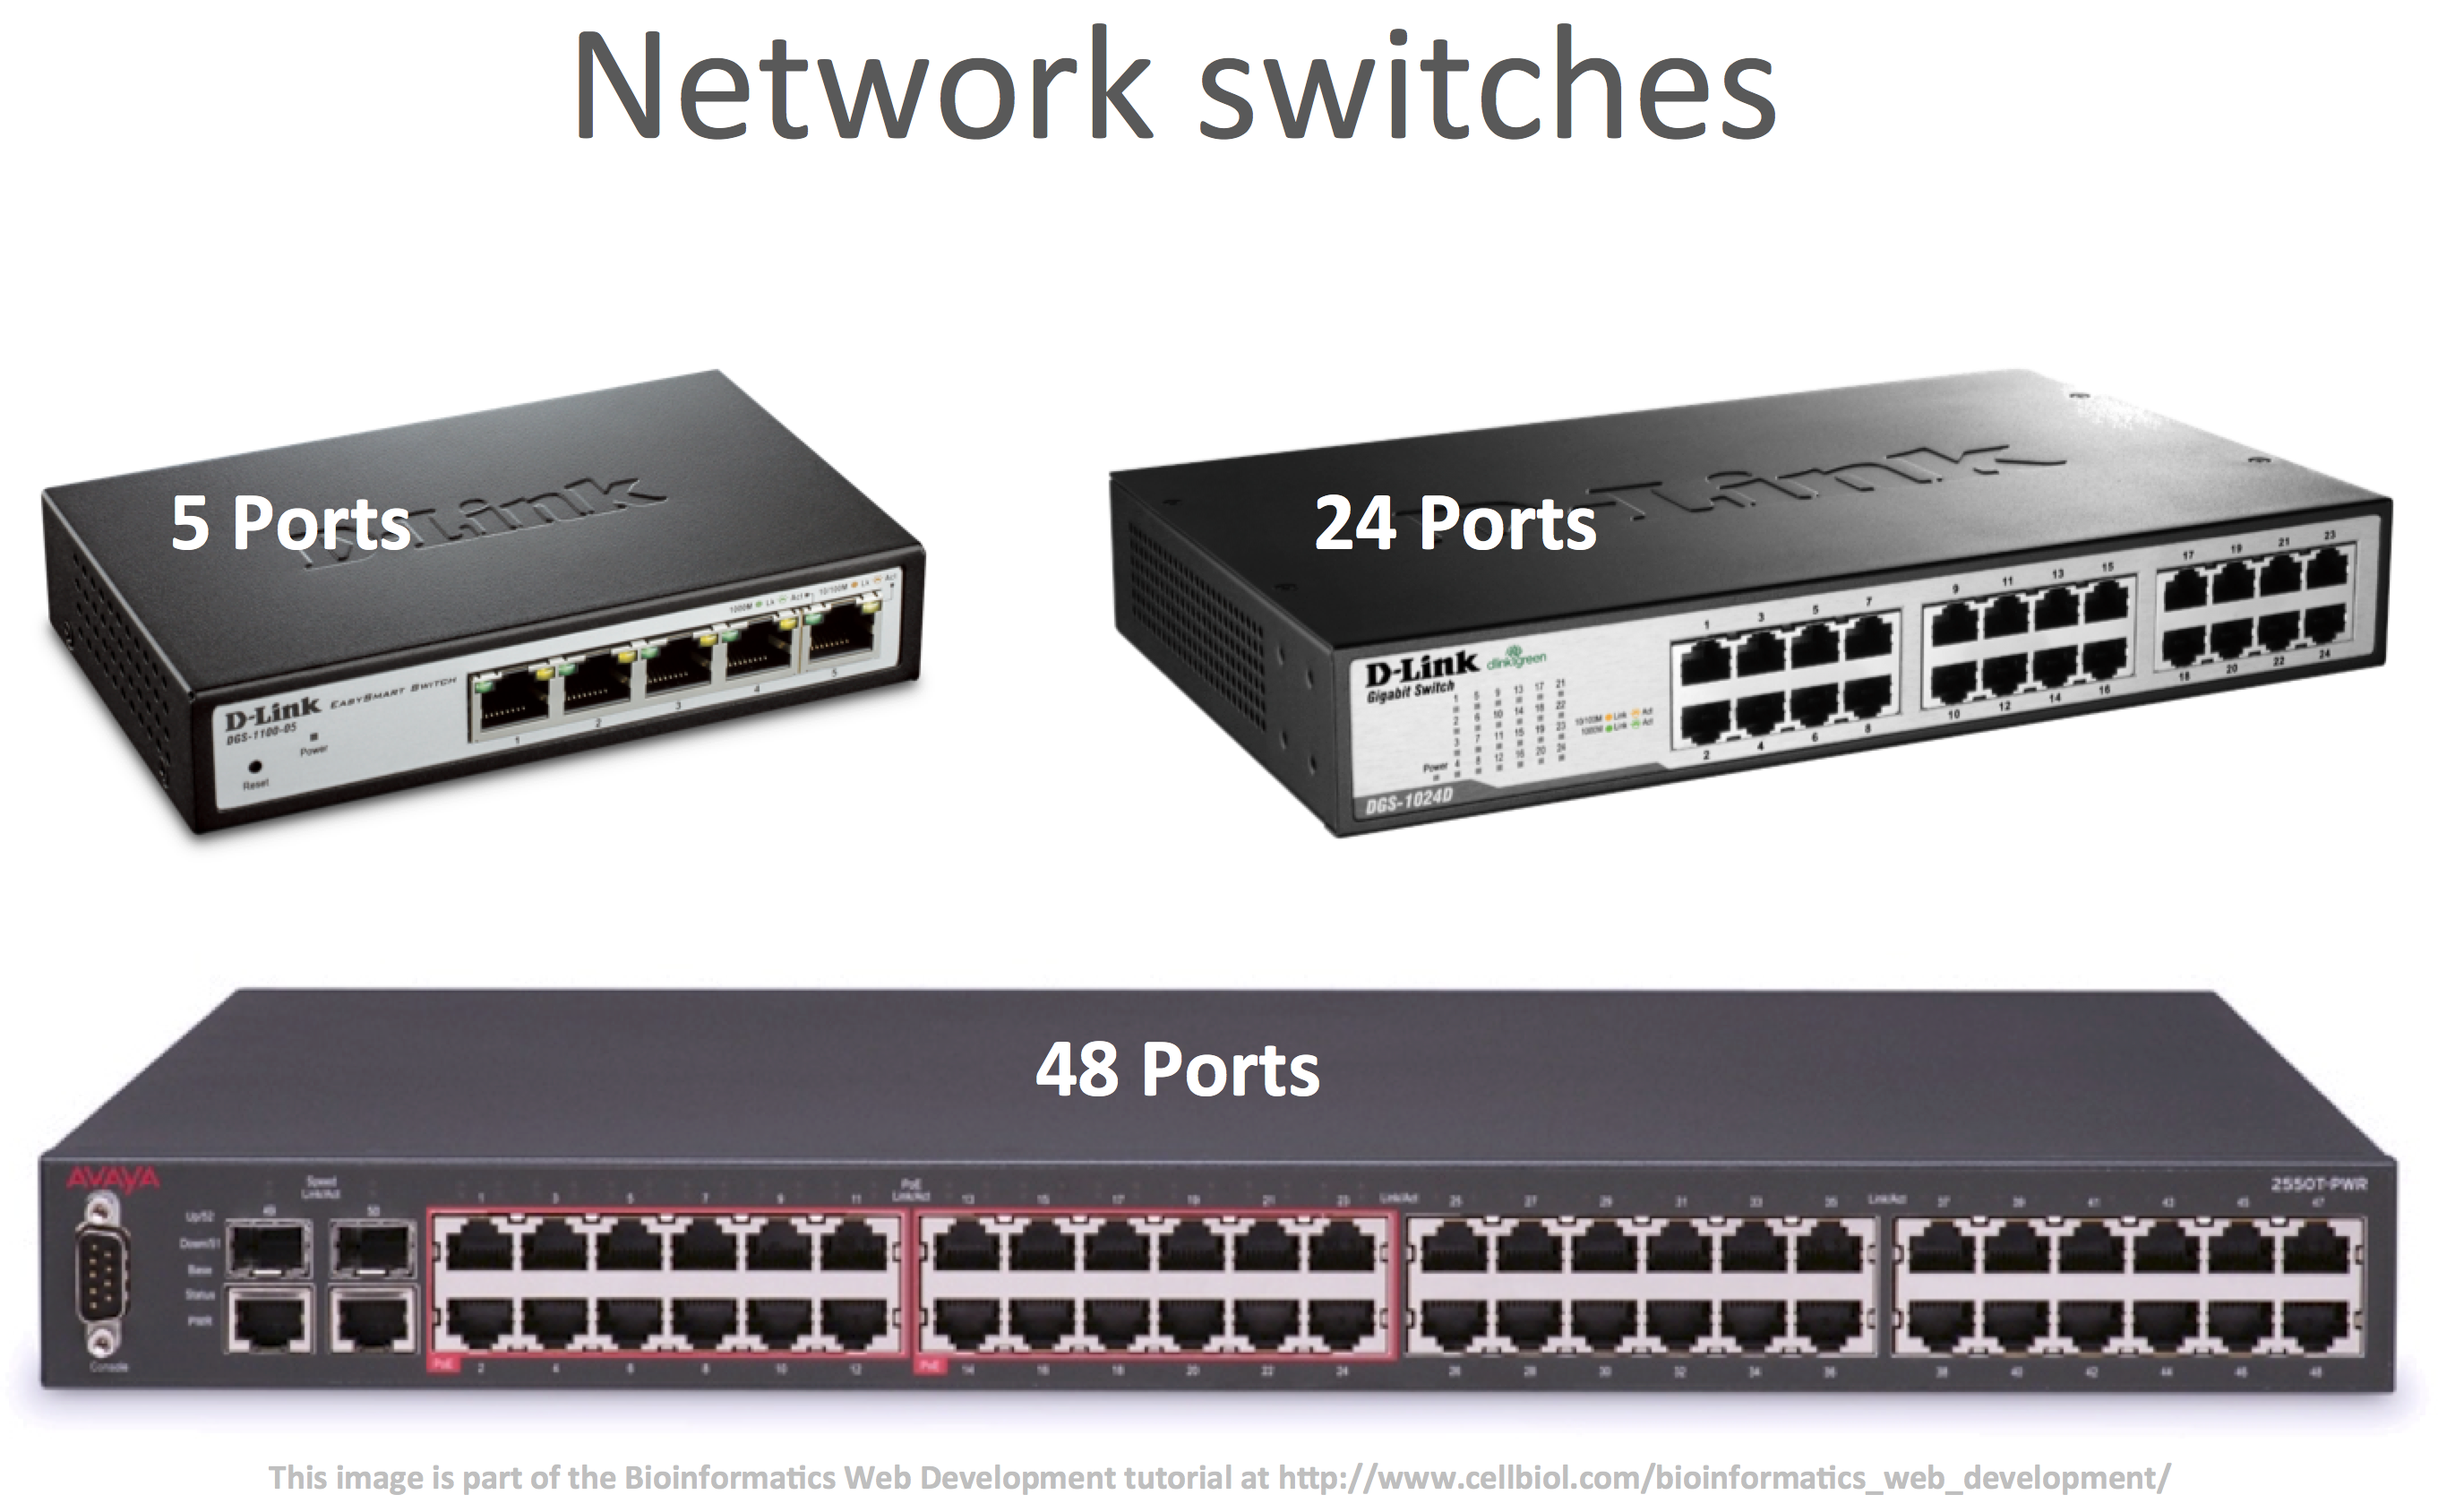 Network switches with varying number of ethernet ports